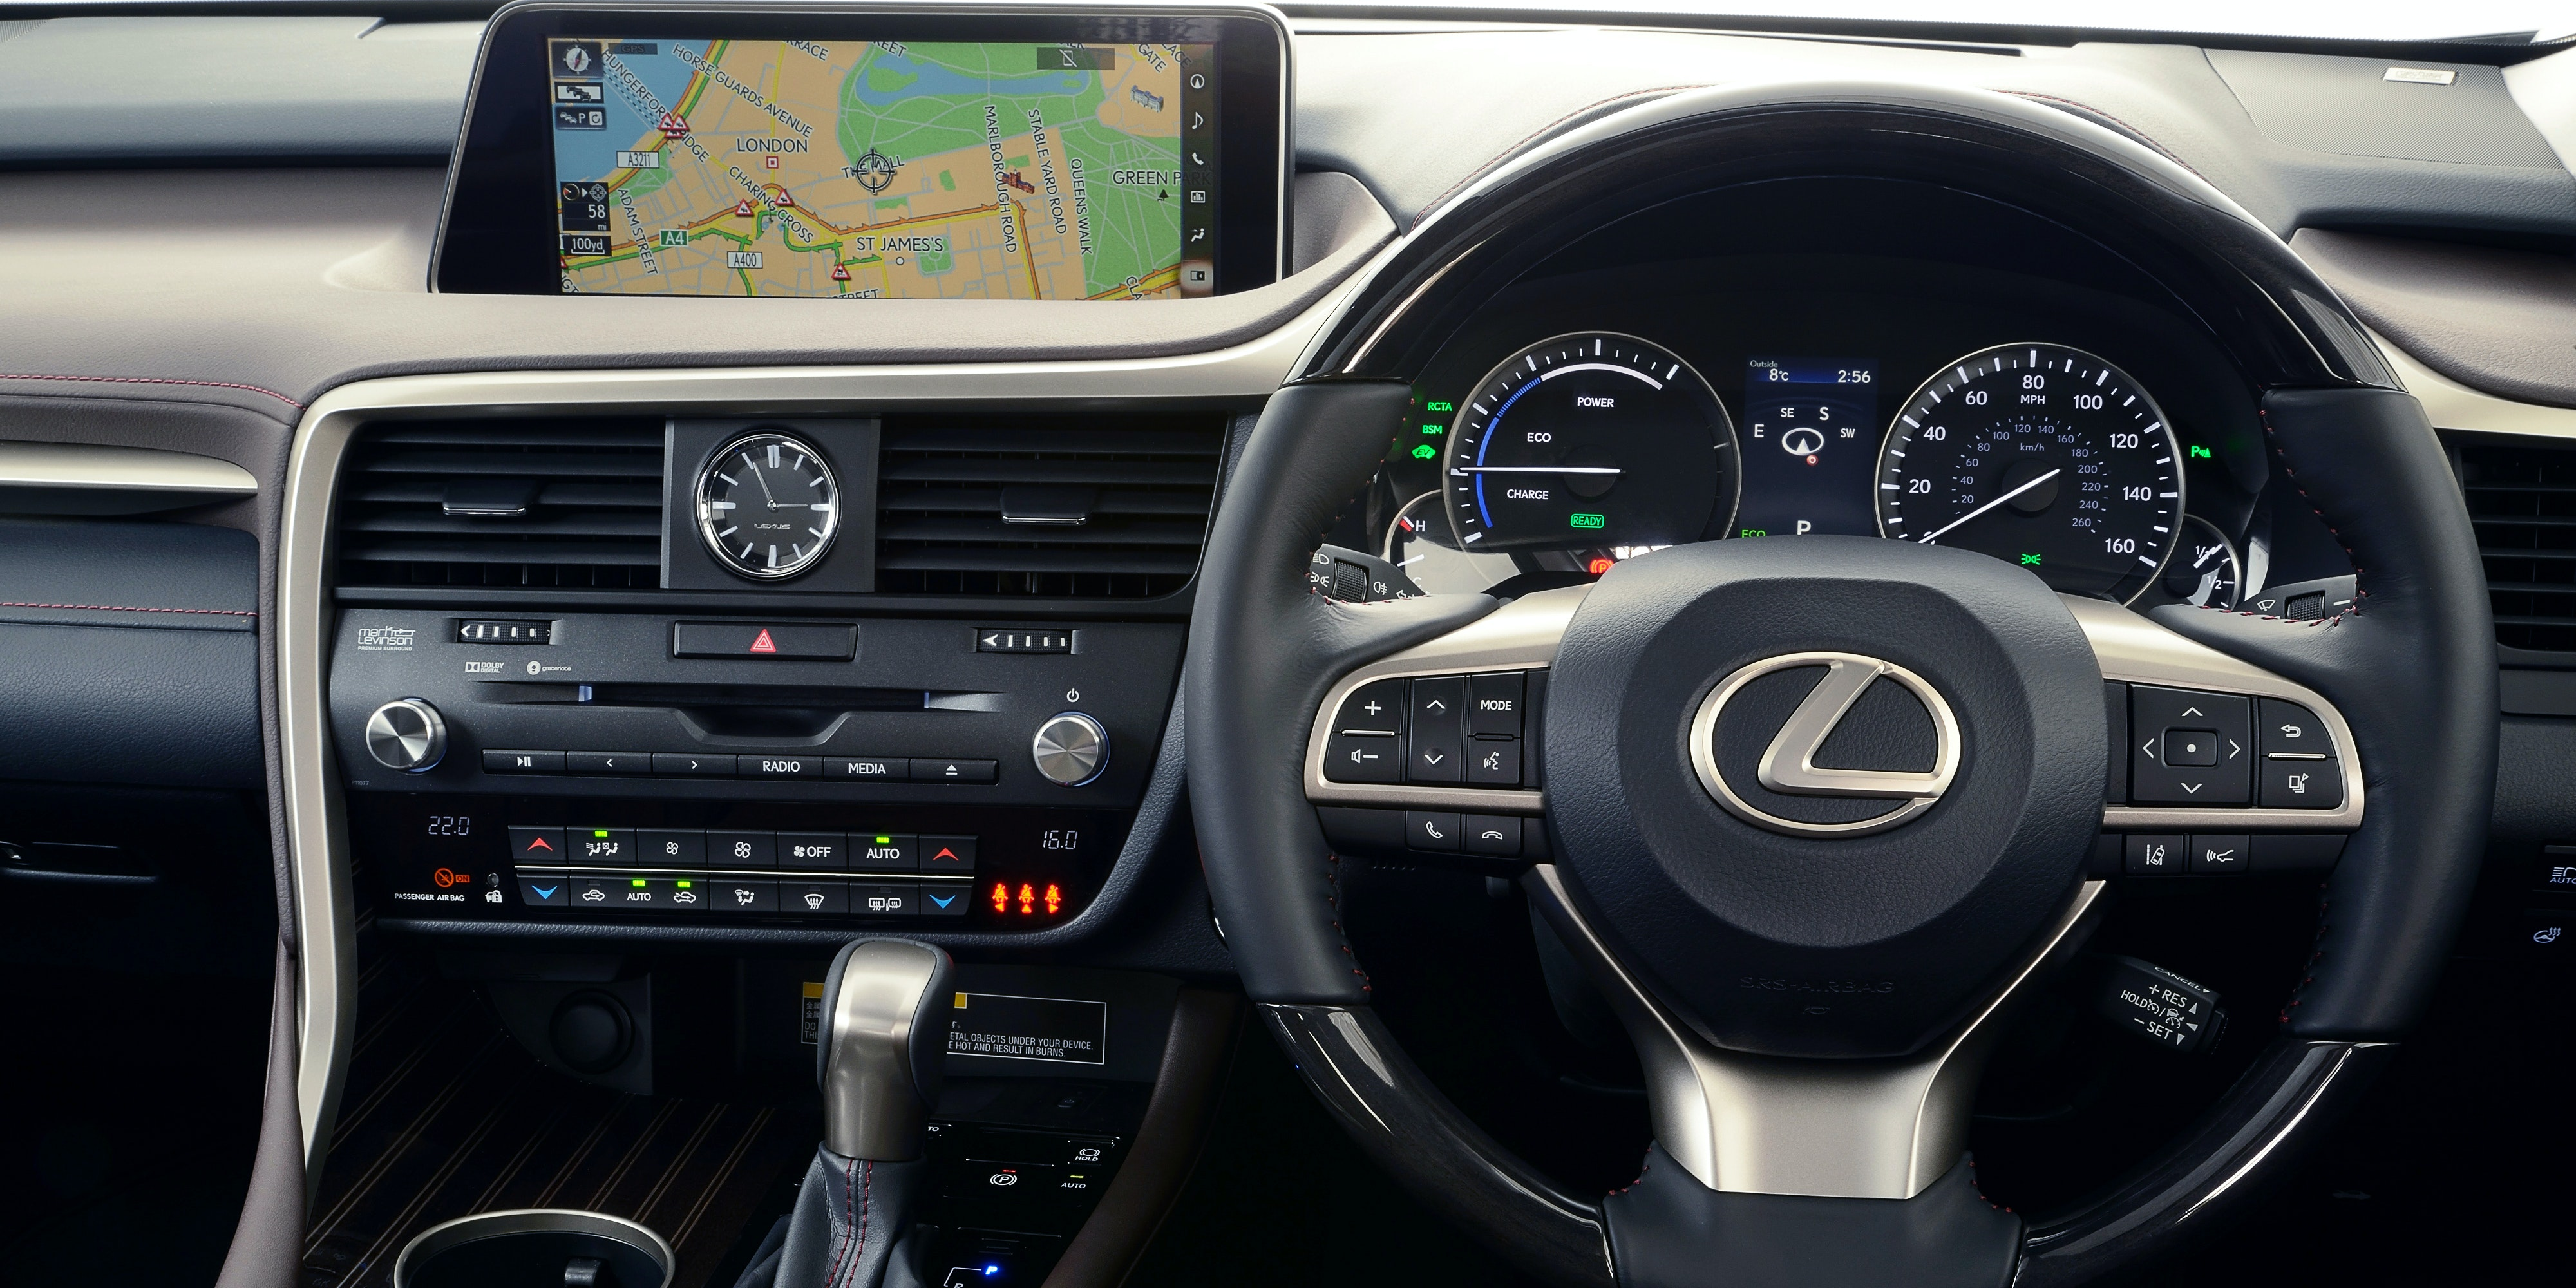 Lexus RX Interior And Infotainment | Carwow